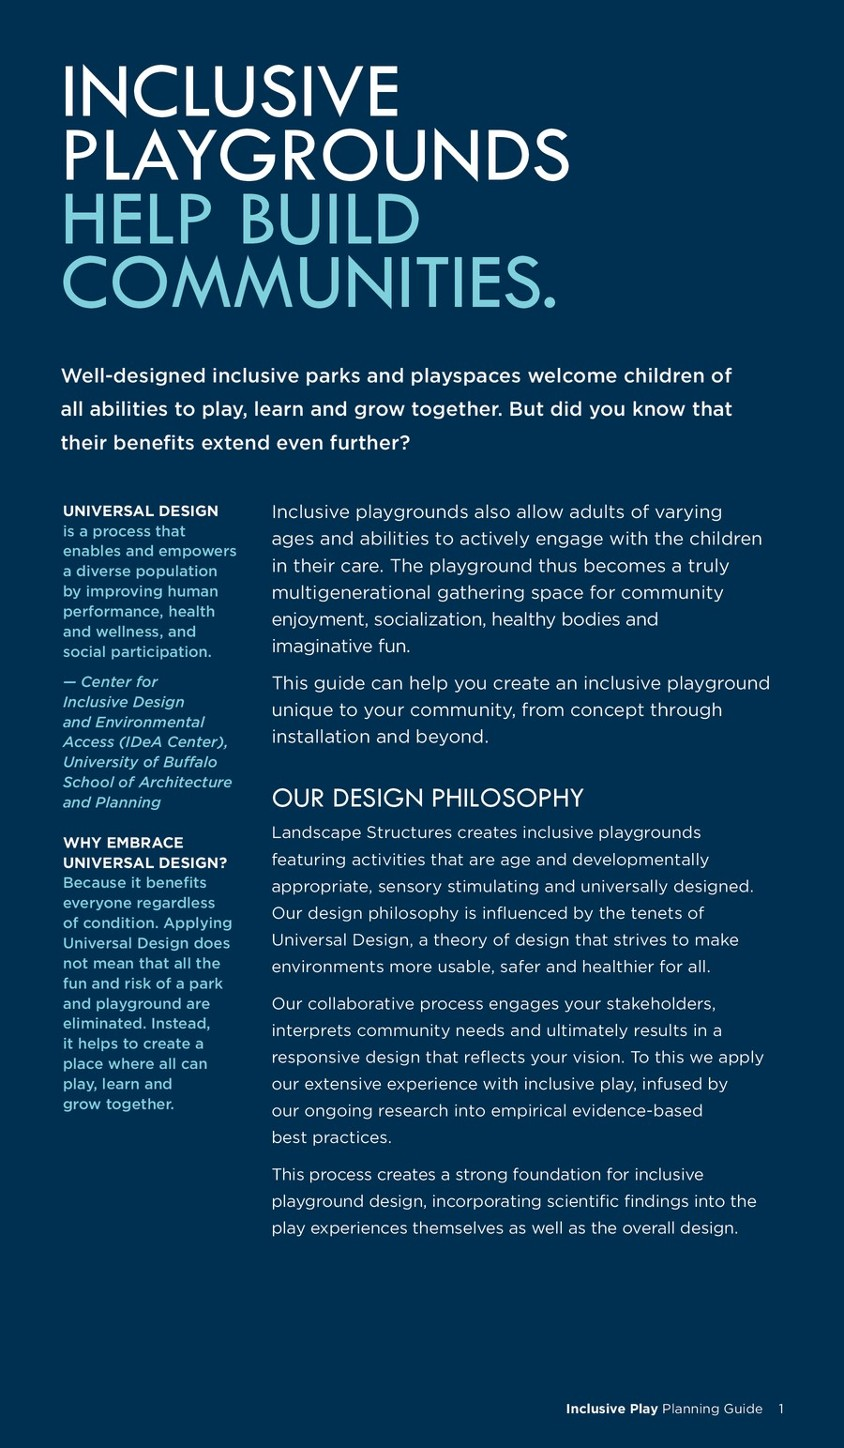 Inclusive Play Planning Guide | Landscape Structures